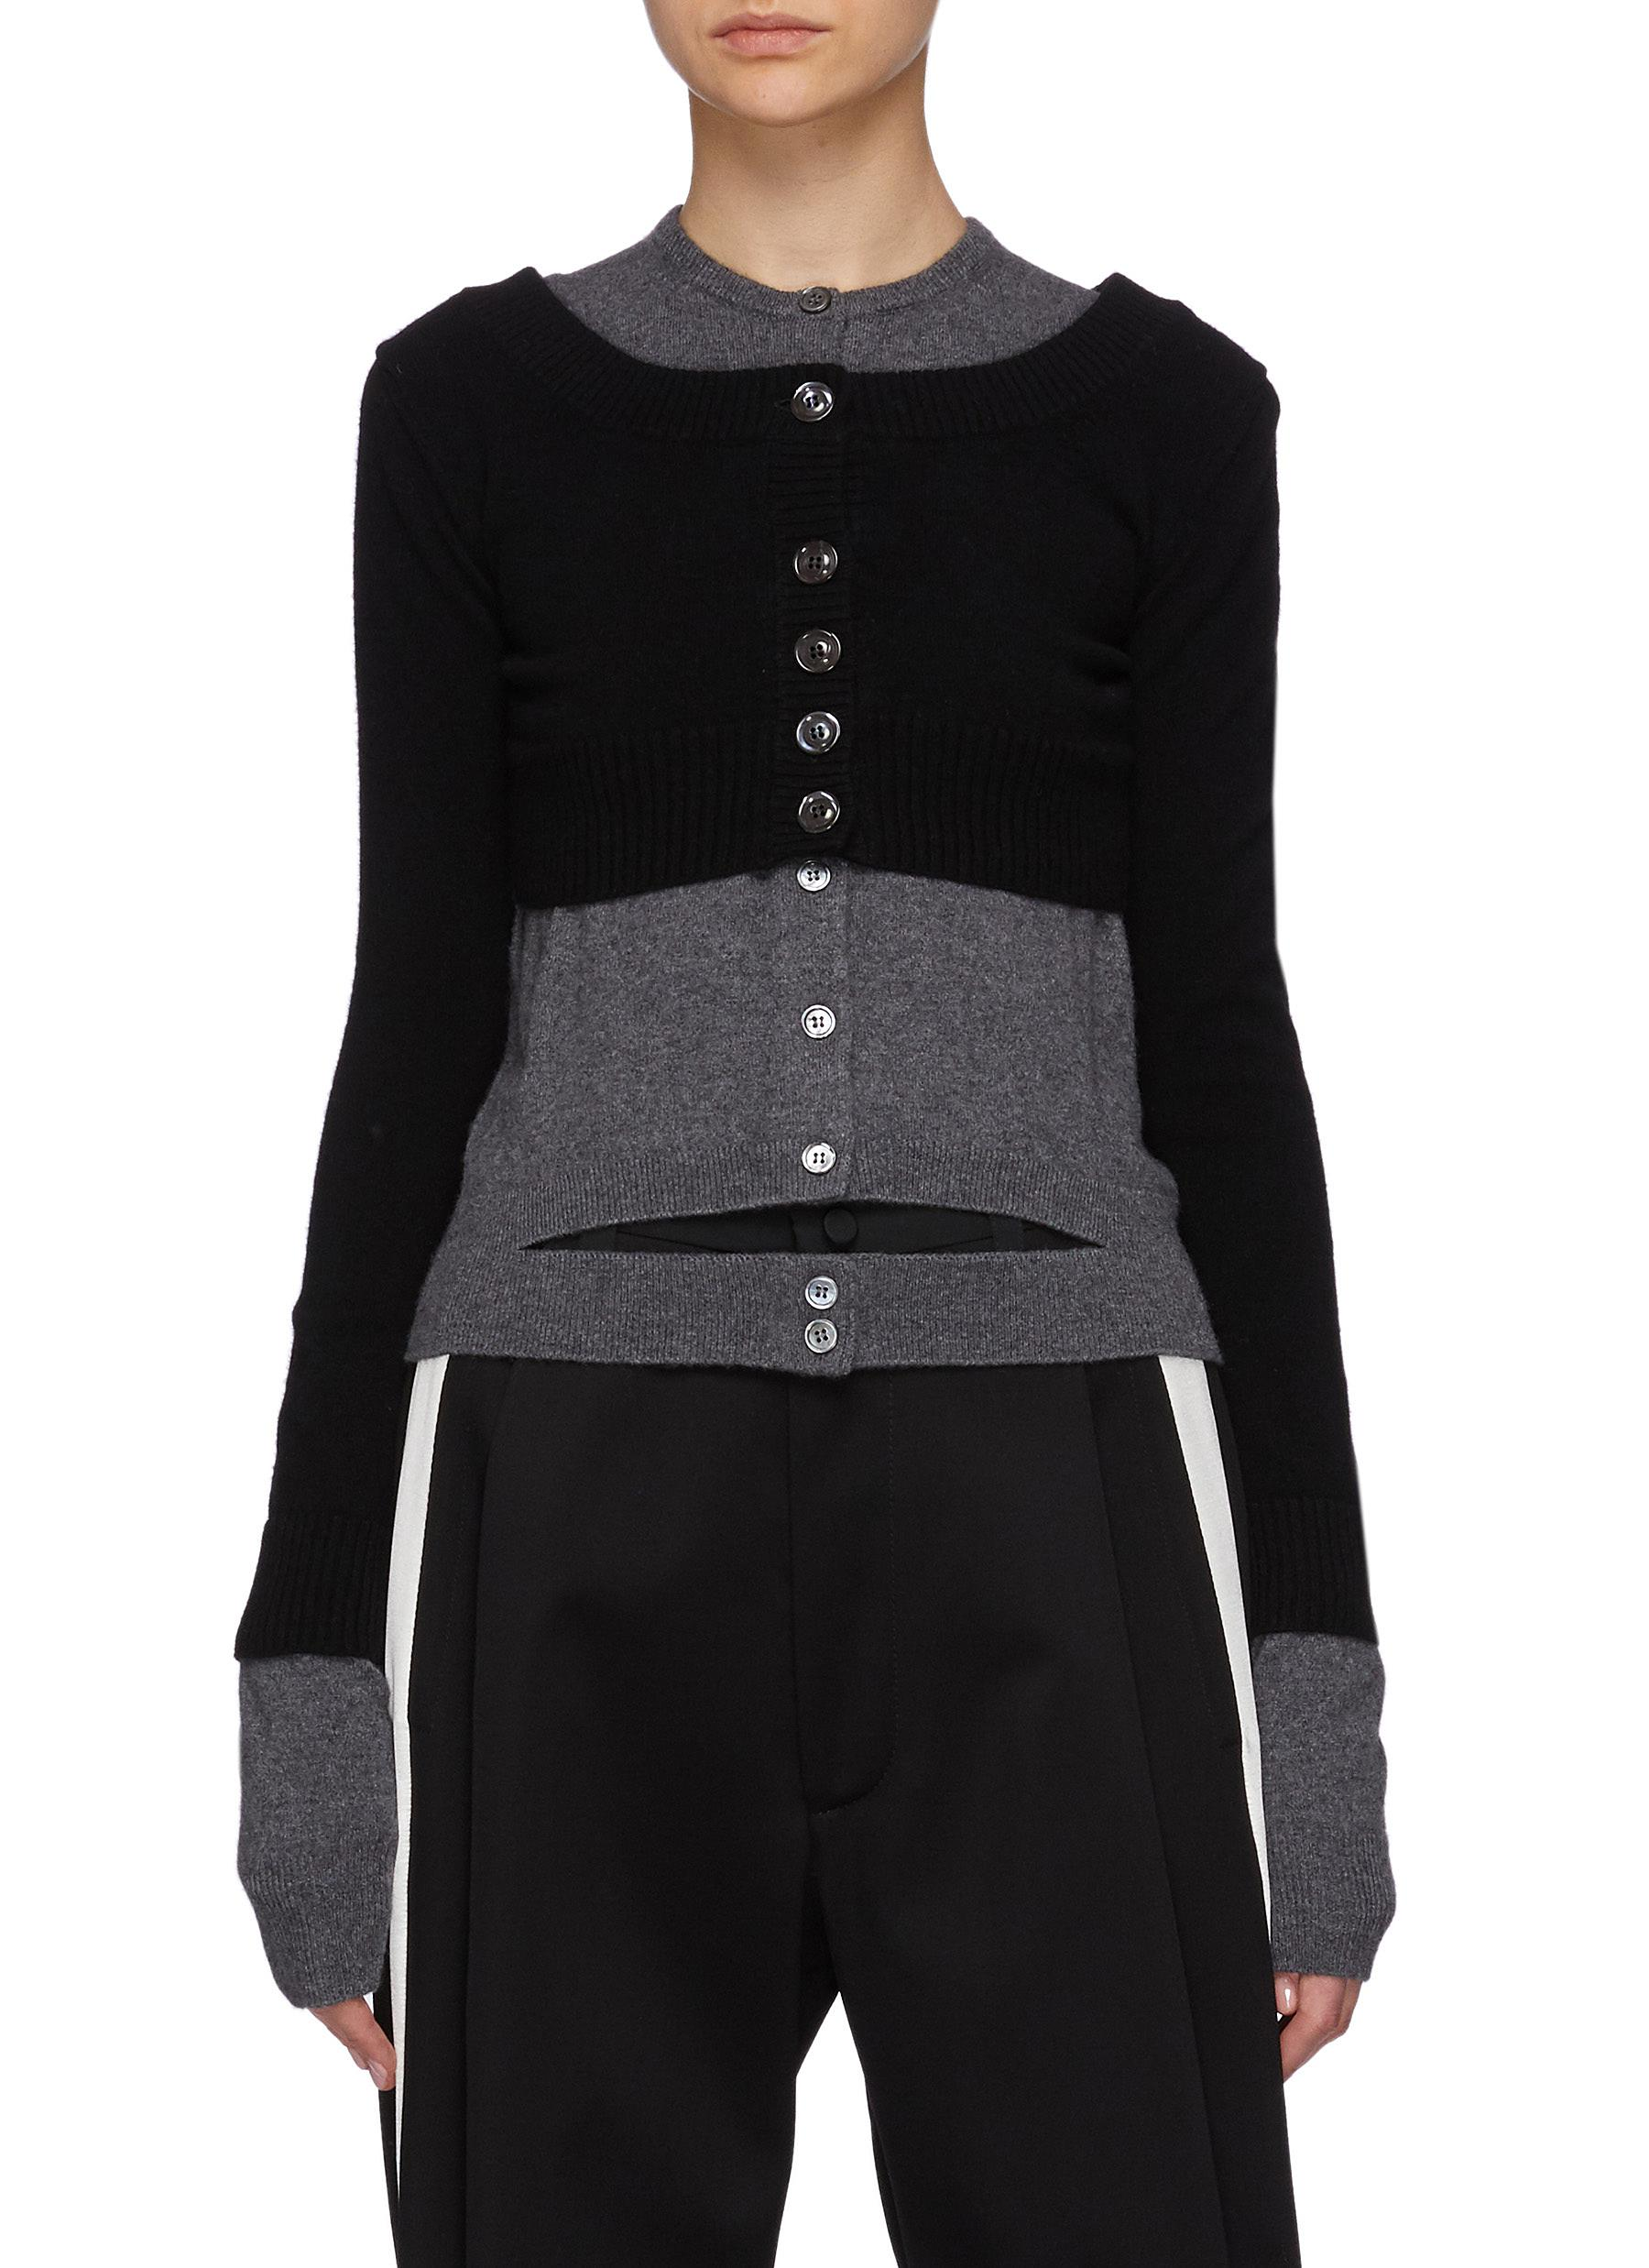 Layered Cut-out Cashmere Cardigan